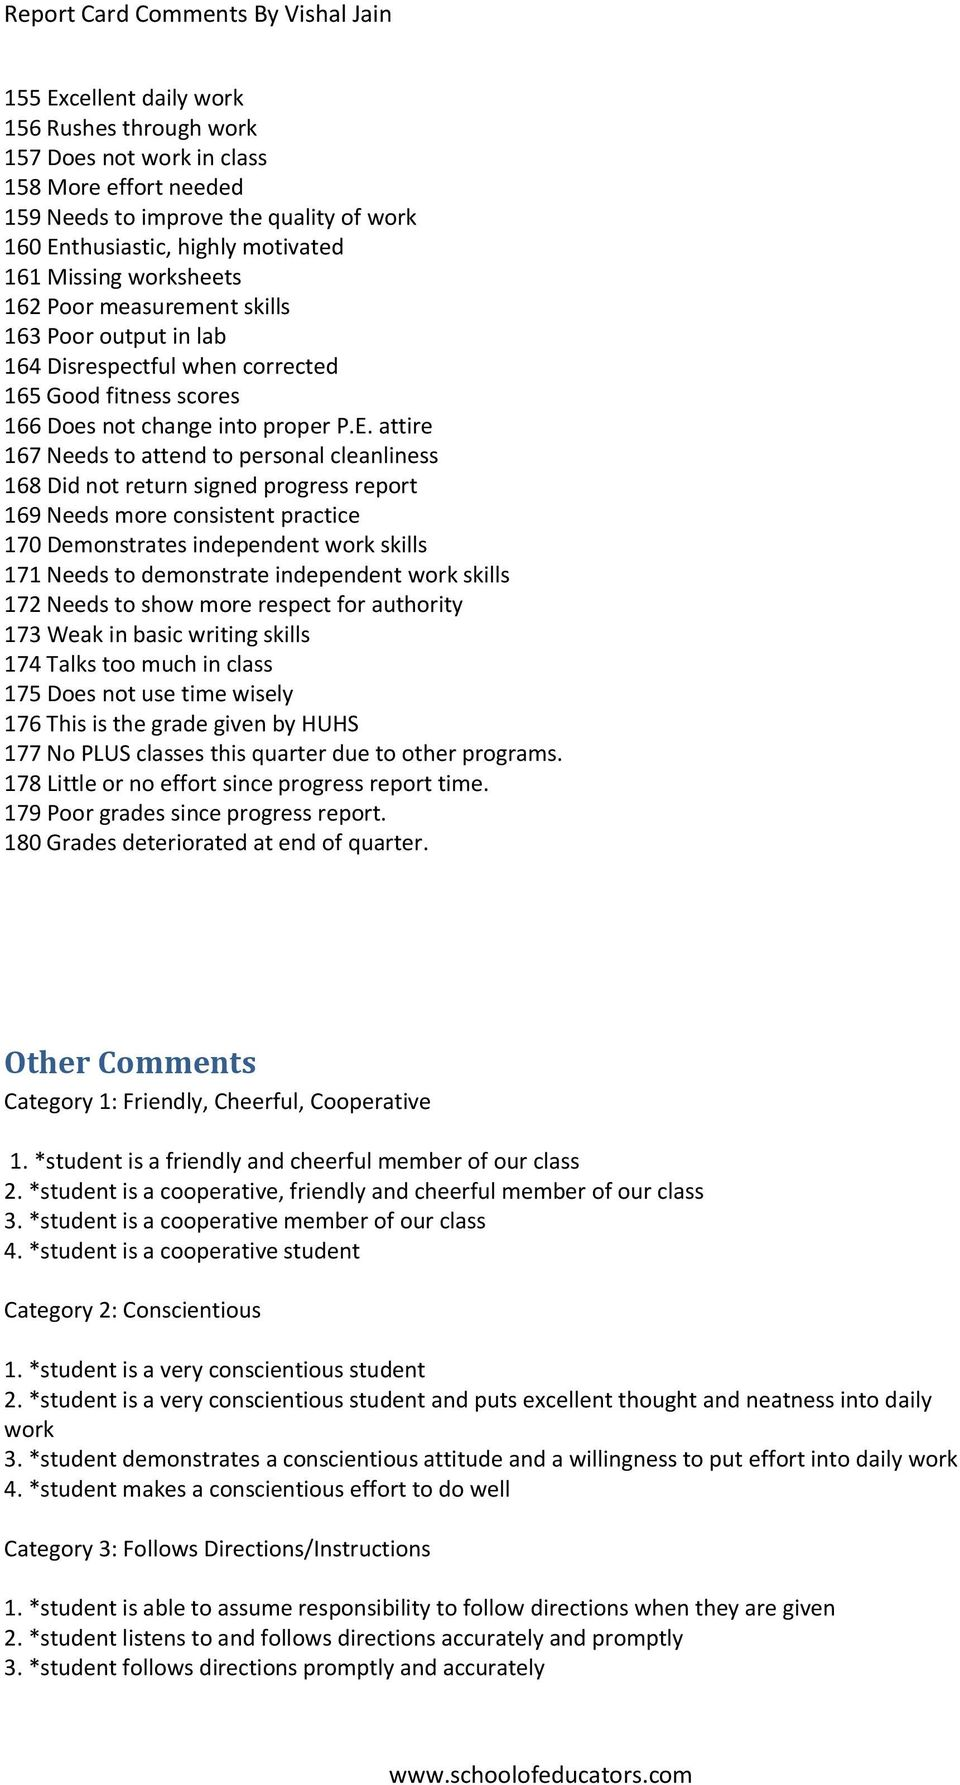 Report Card Comments By Vishal Jain - PDF